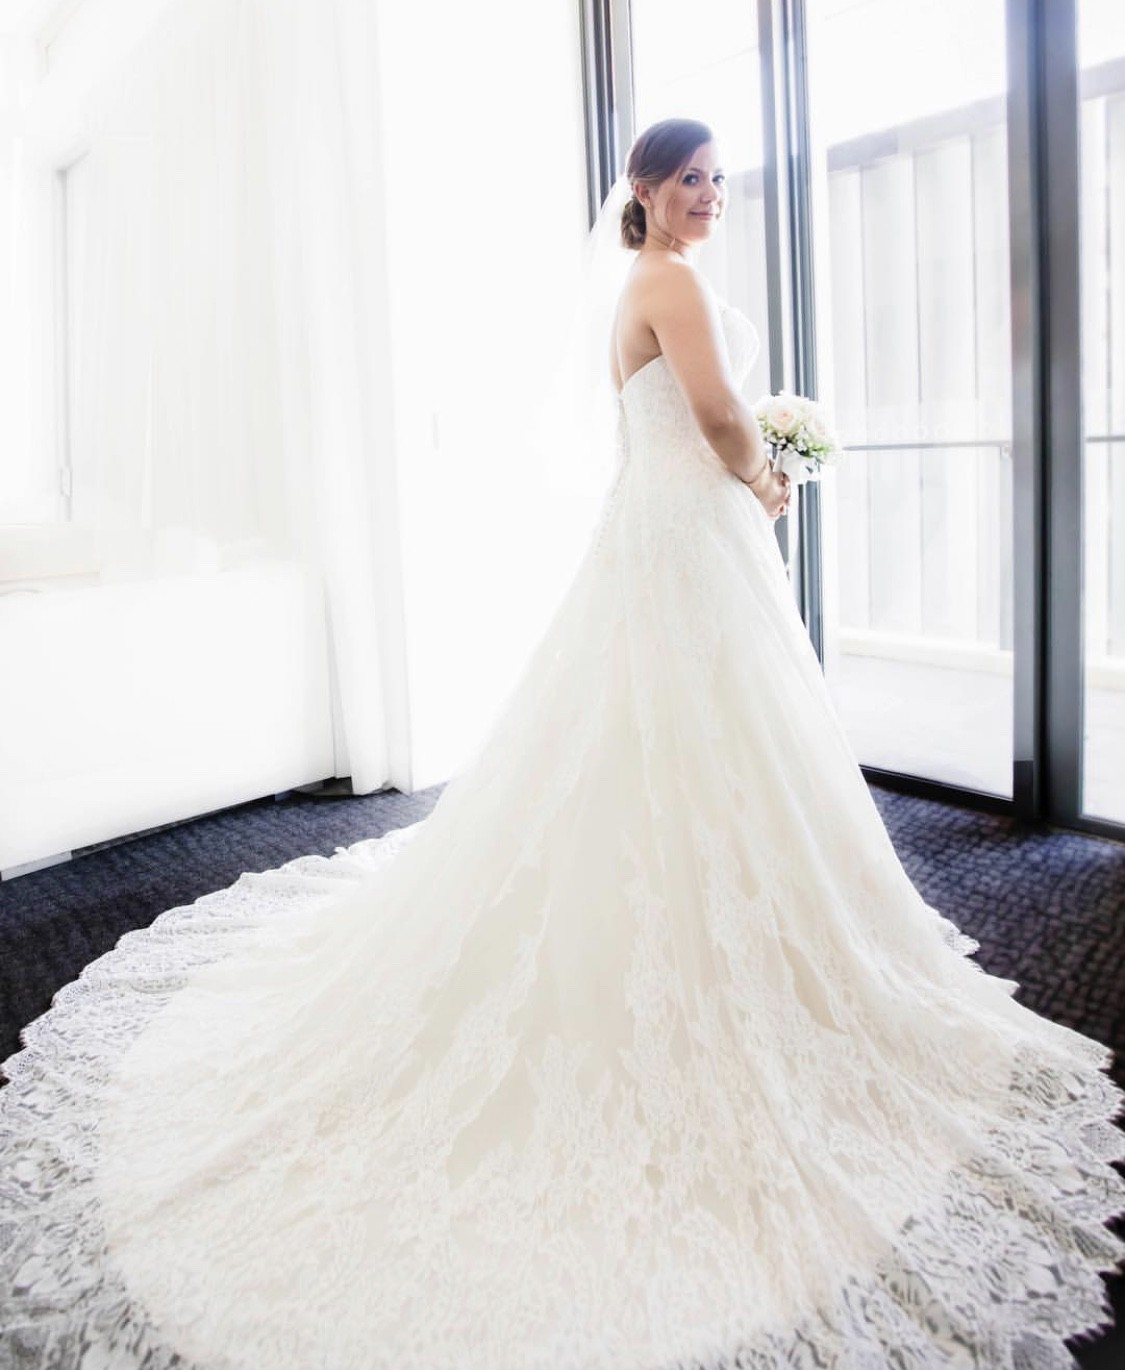 Maggie Sottero Used Wedding Dress On Sale 73% Off